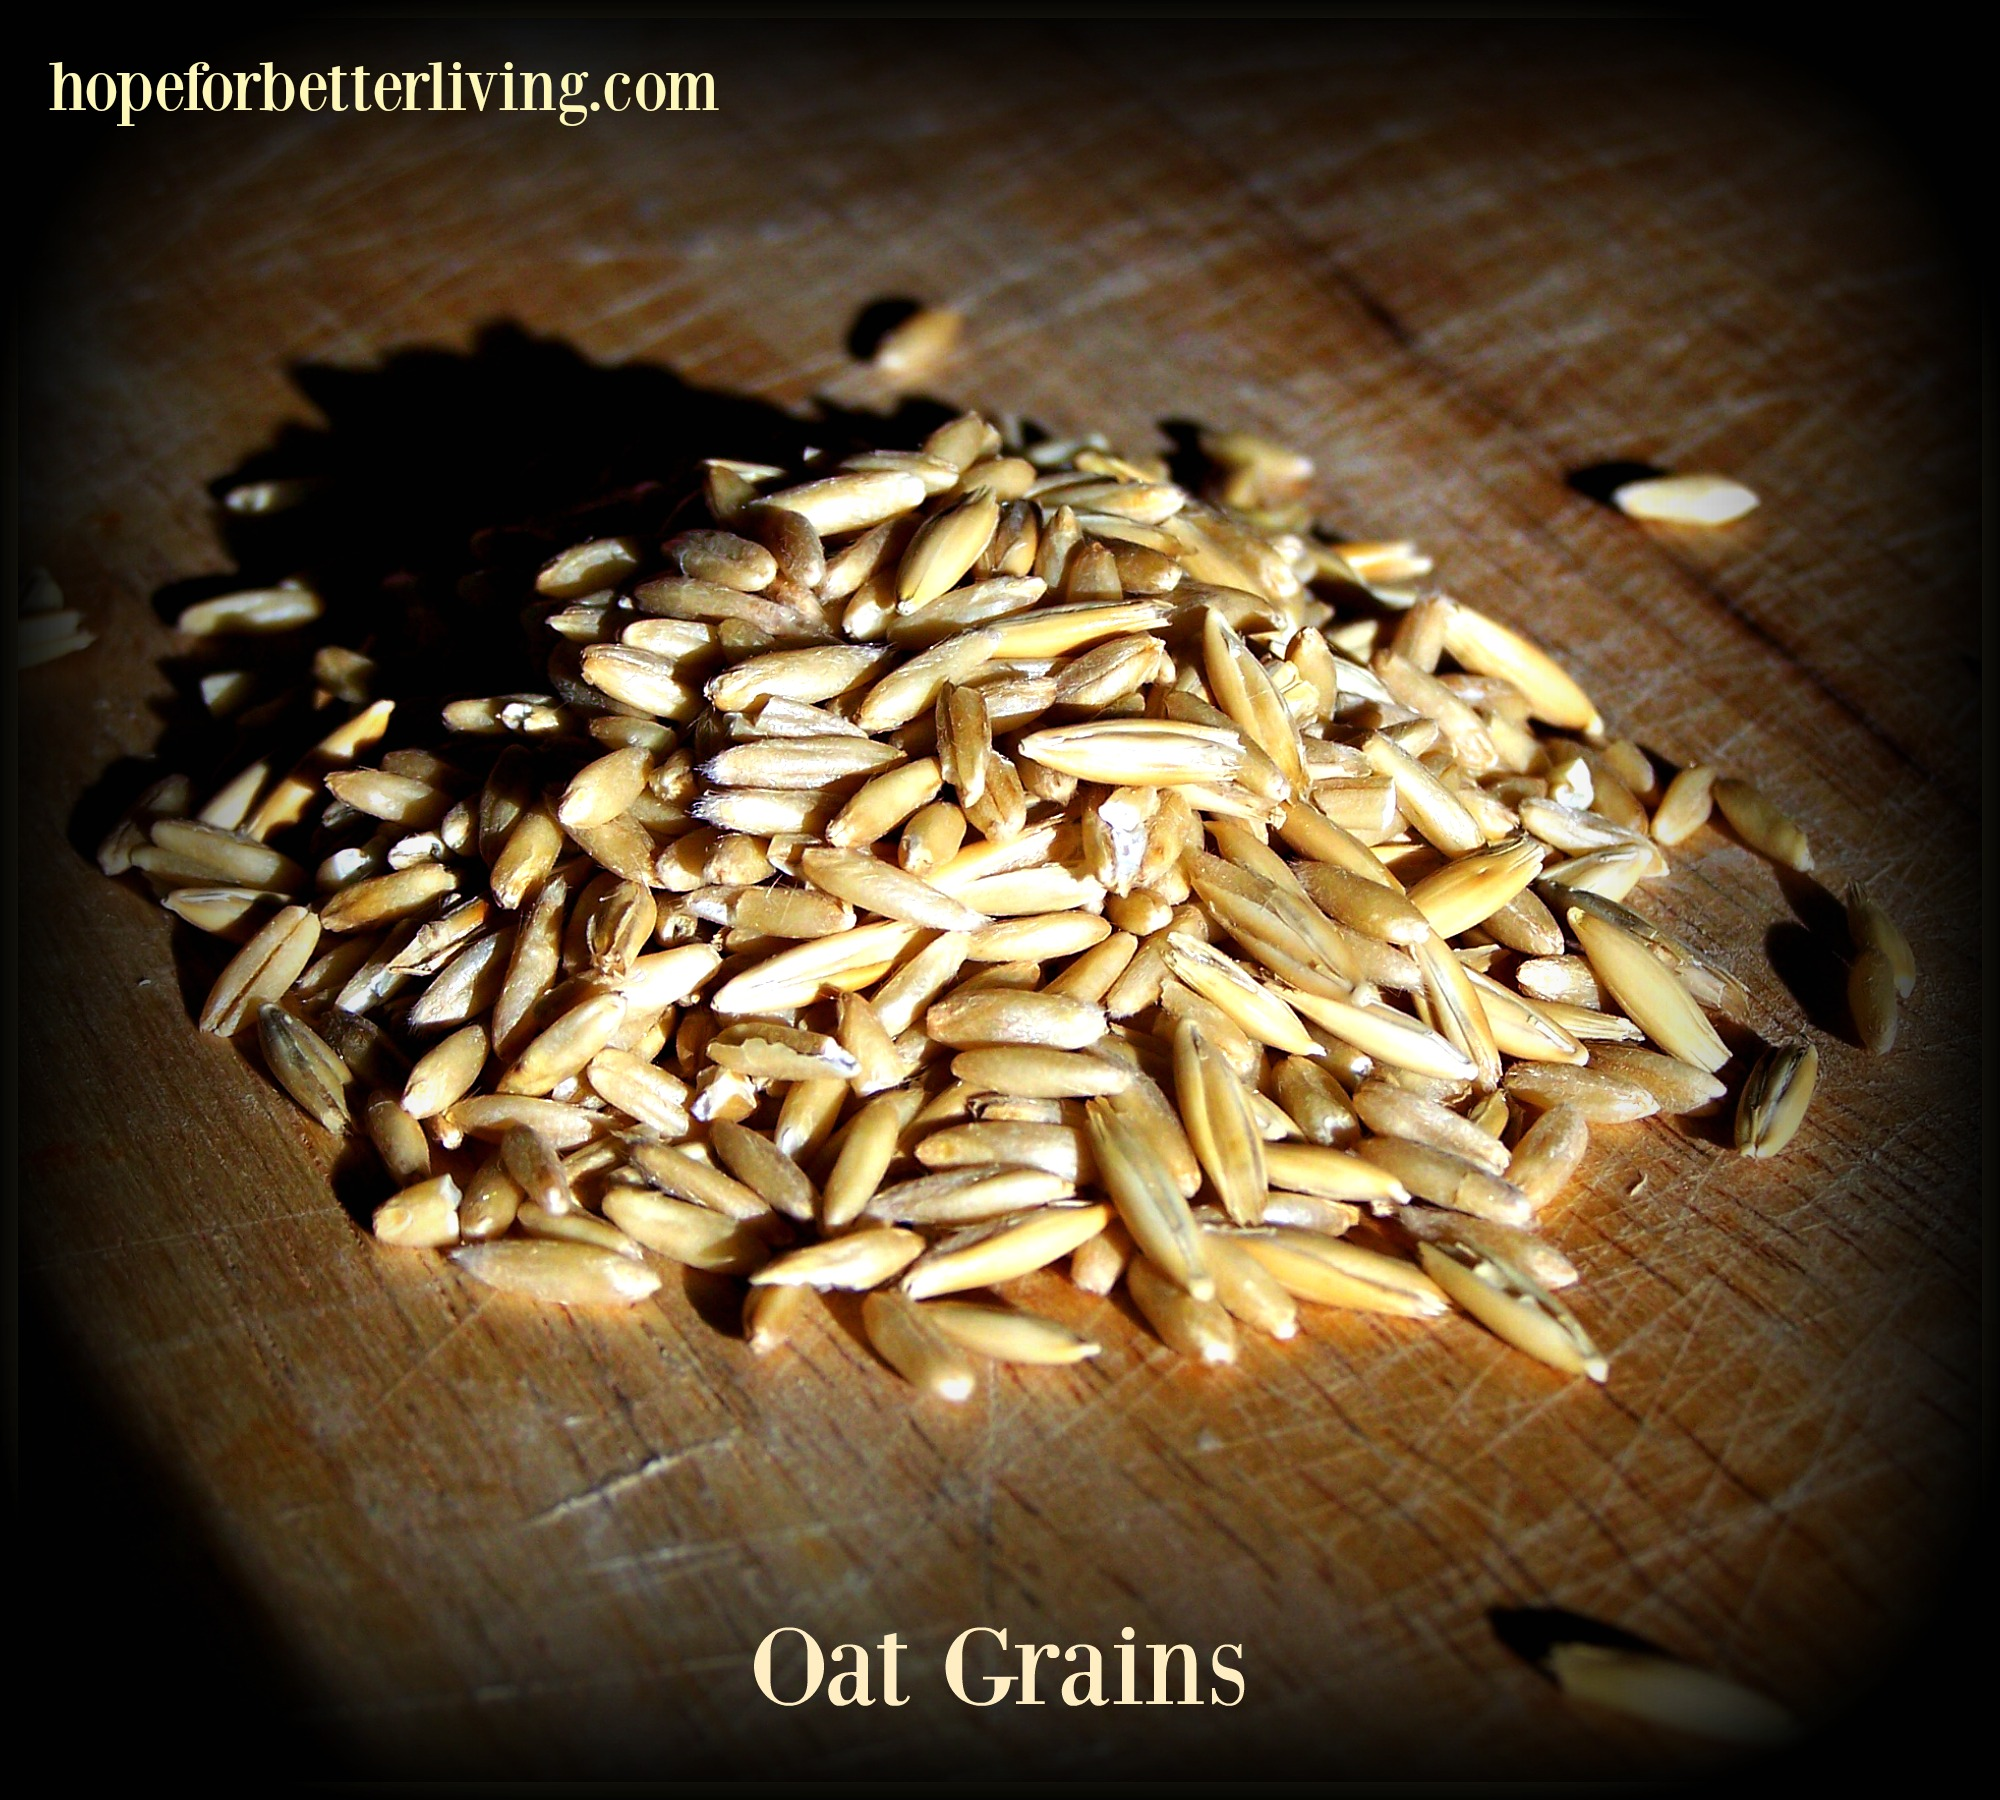 Rolling oats in your kitchen is a frugal way to add more nutrition to the kitchen!